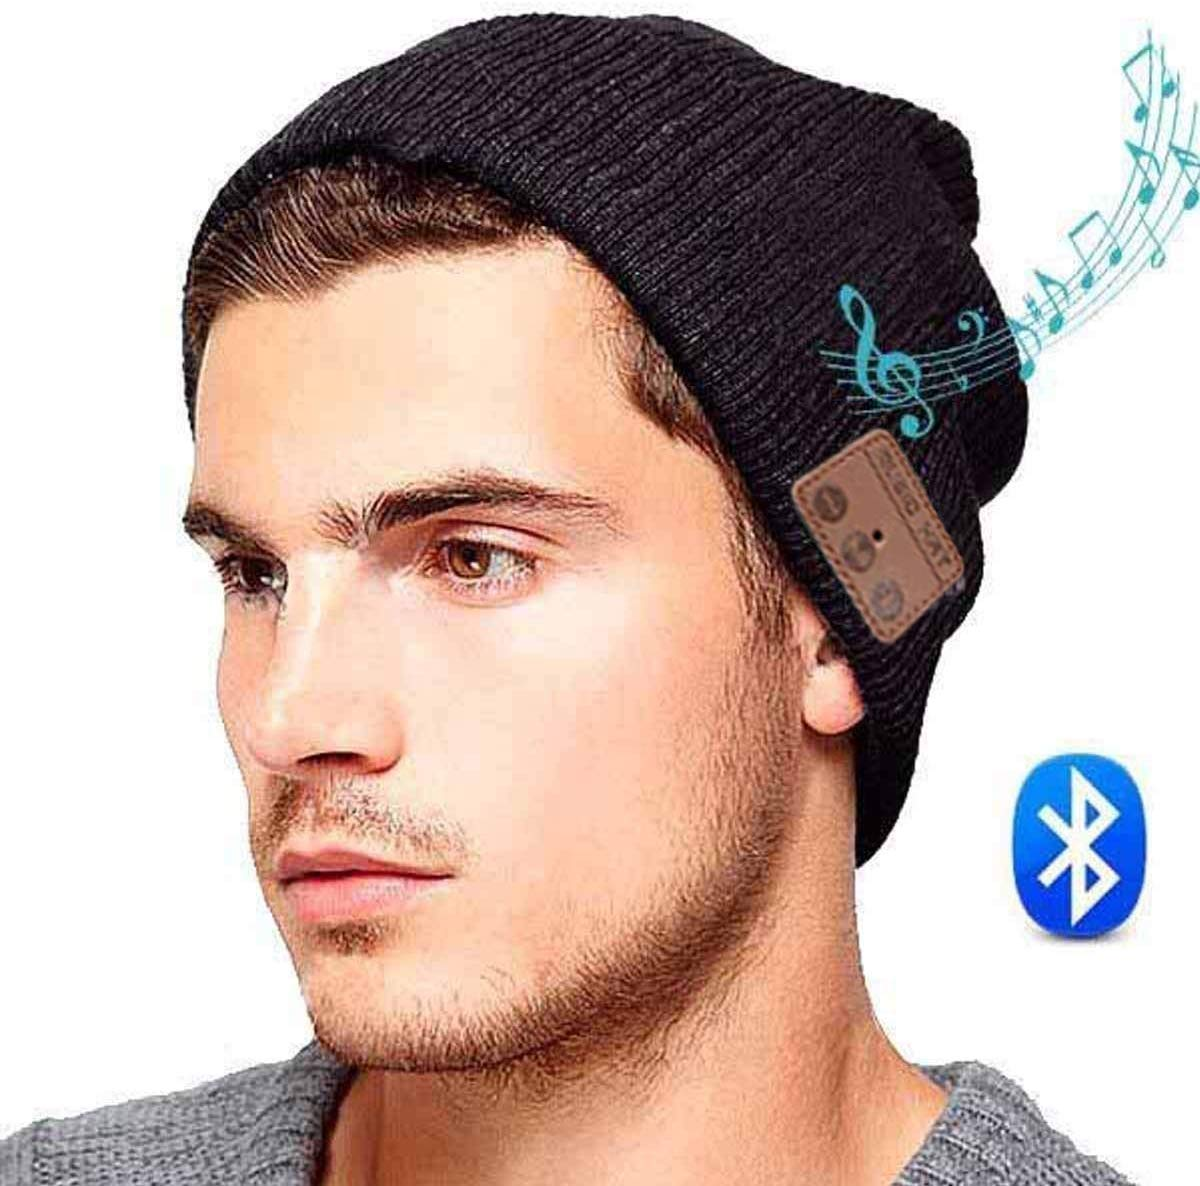 ULTRICS Wireless Bluetooth V5.0 Music Headset Hat, Organic Cotton Beanie Cap